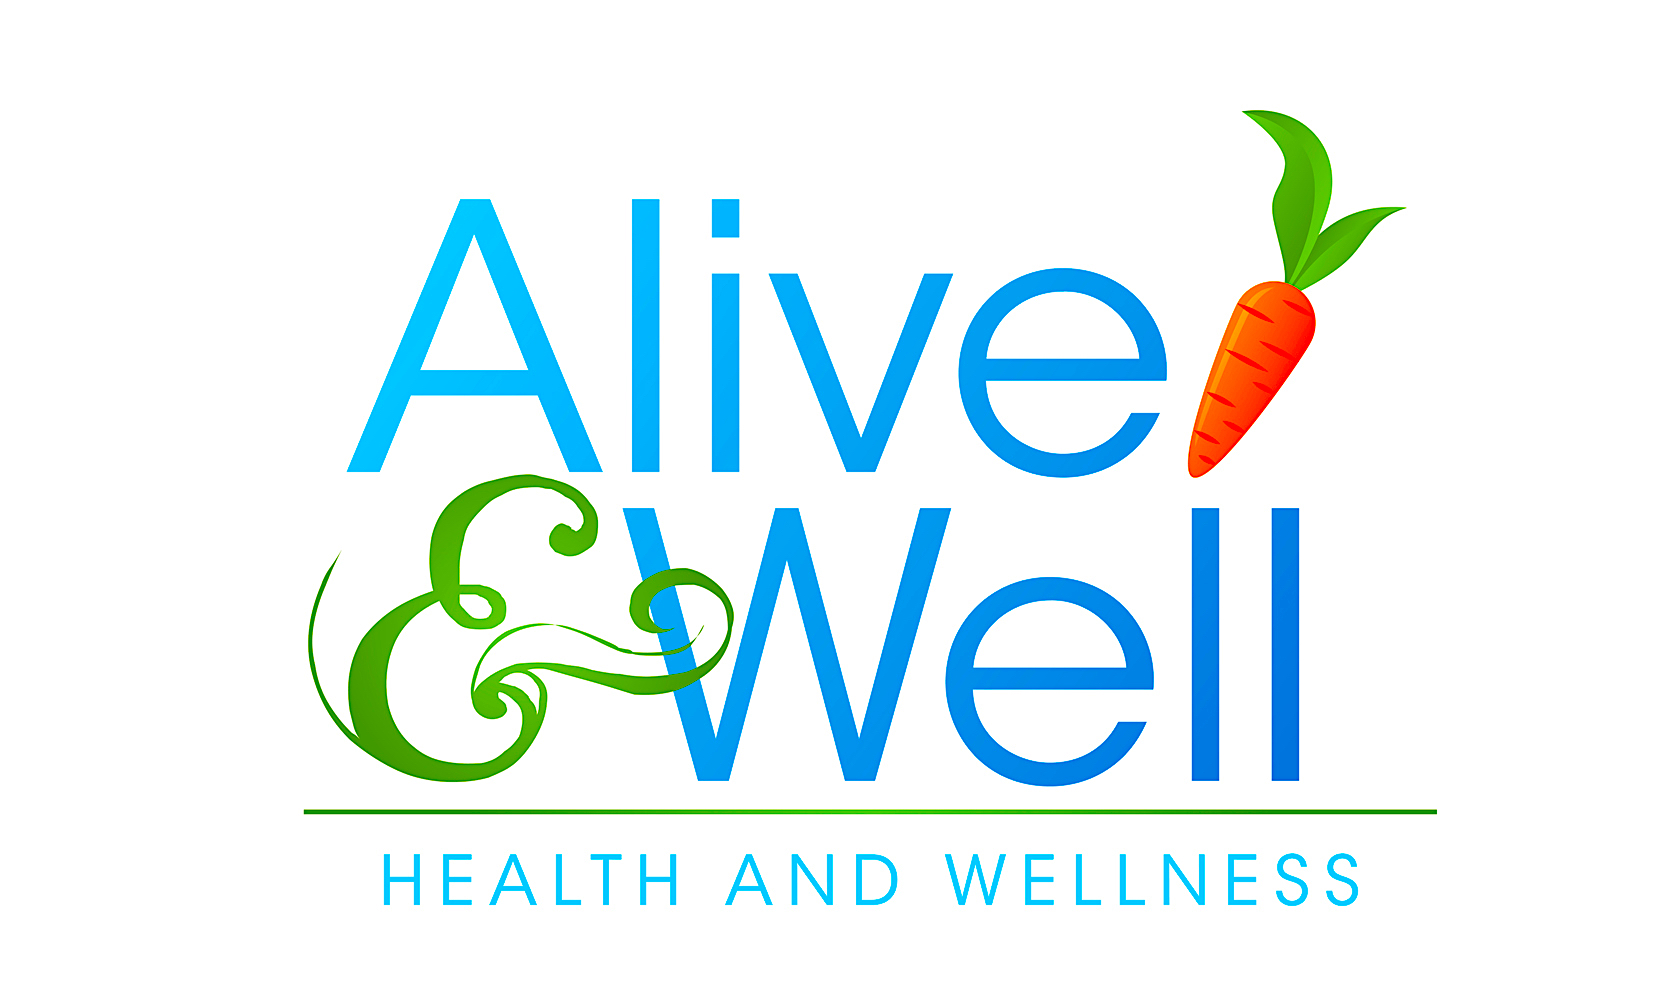 Alive and Well Health and Wellness